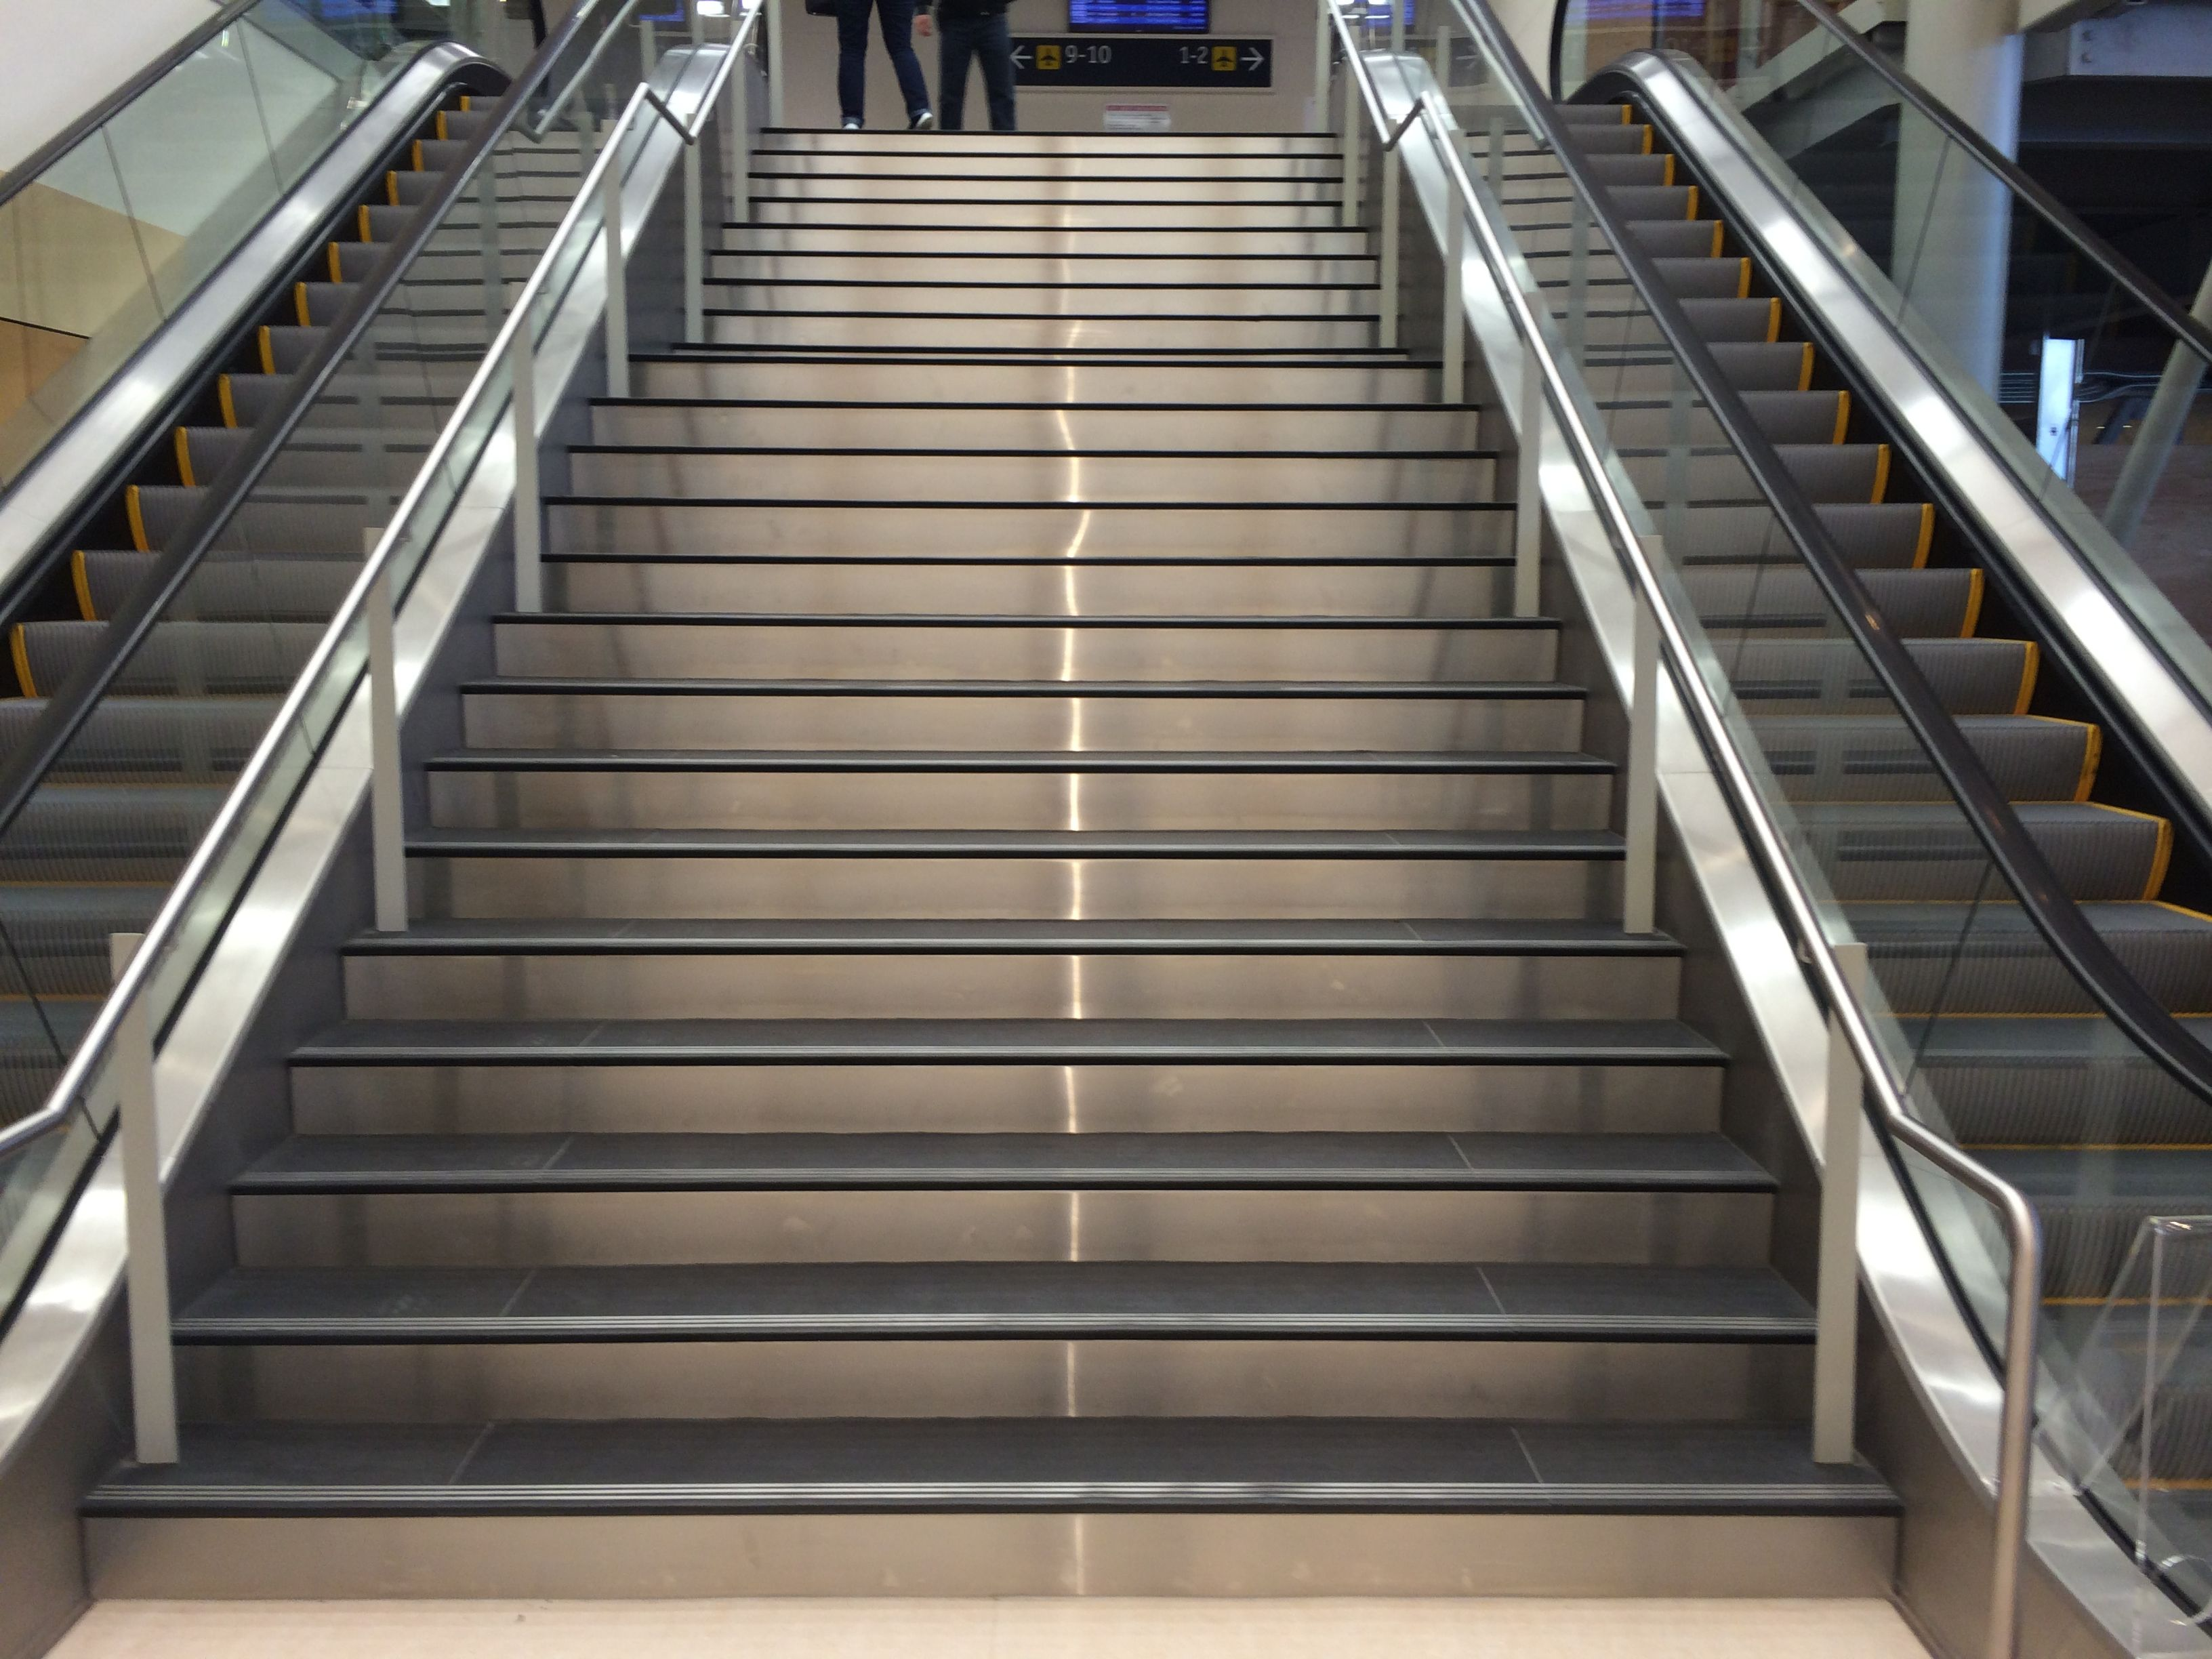 Stair Treads In Black Slate Installed At The Victoria Airport In Victoria,  BC